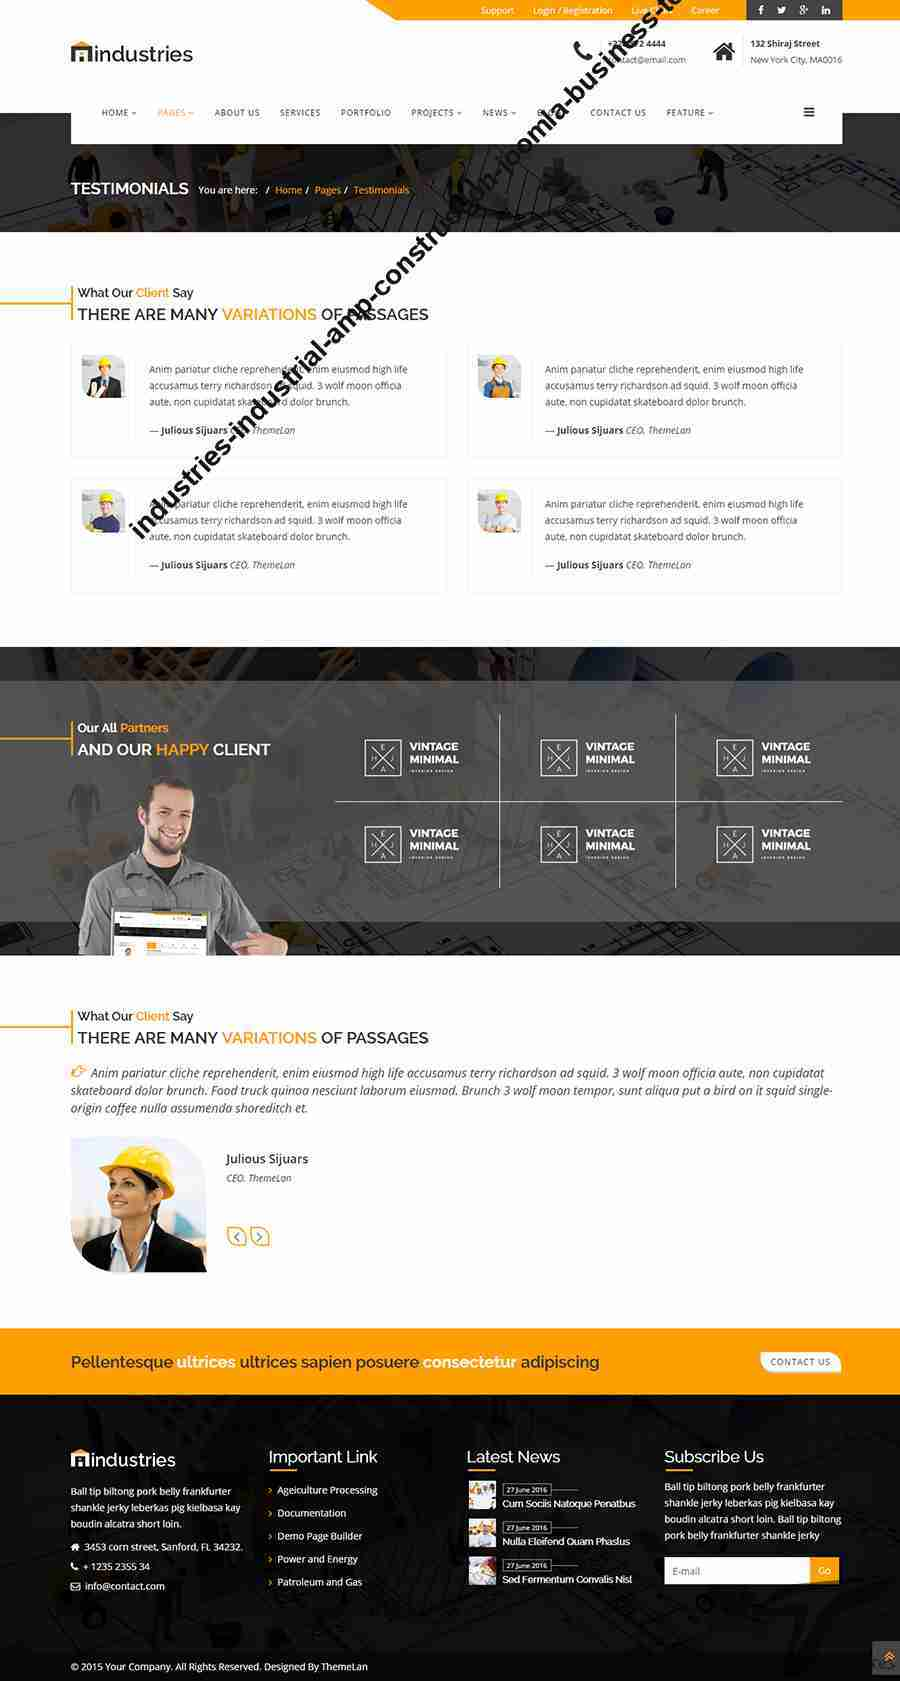 https://images.besthemes.com/images/h1_industries-industrial-amp-construction-joomla-business-template10-_-195277563/10_testimonial.png